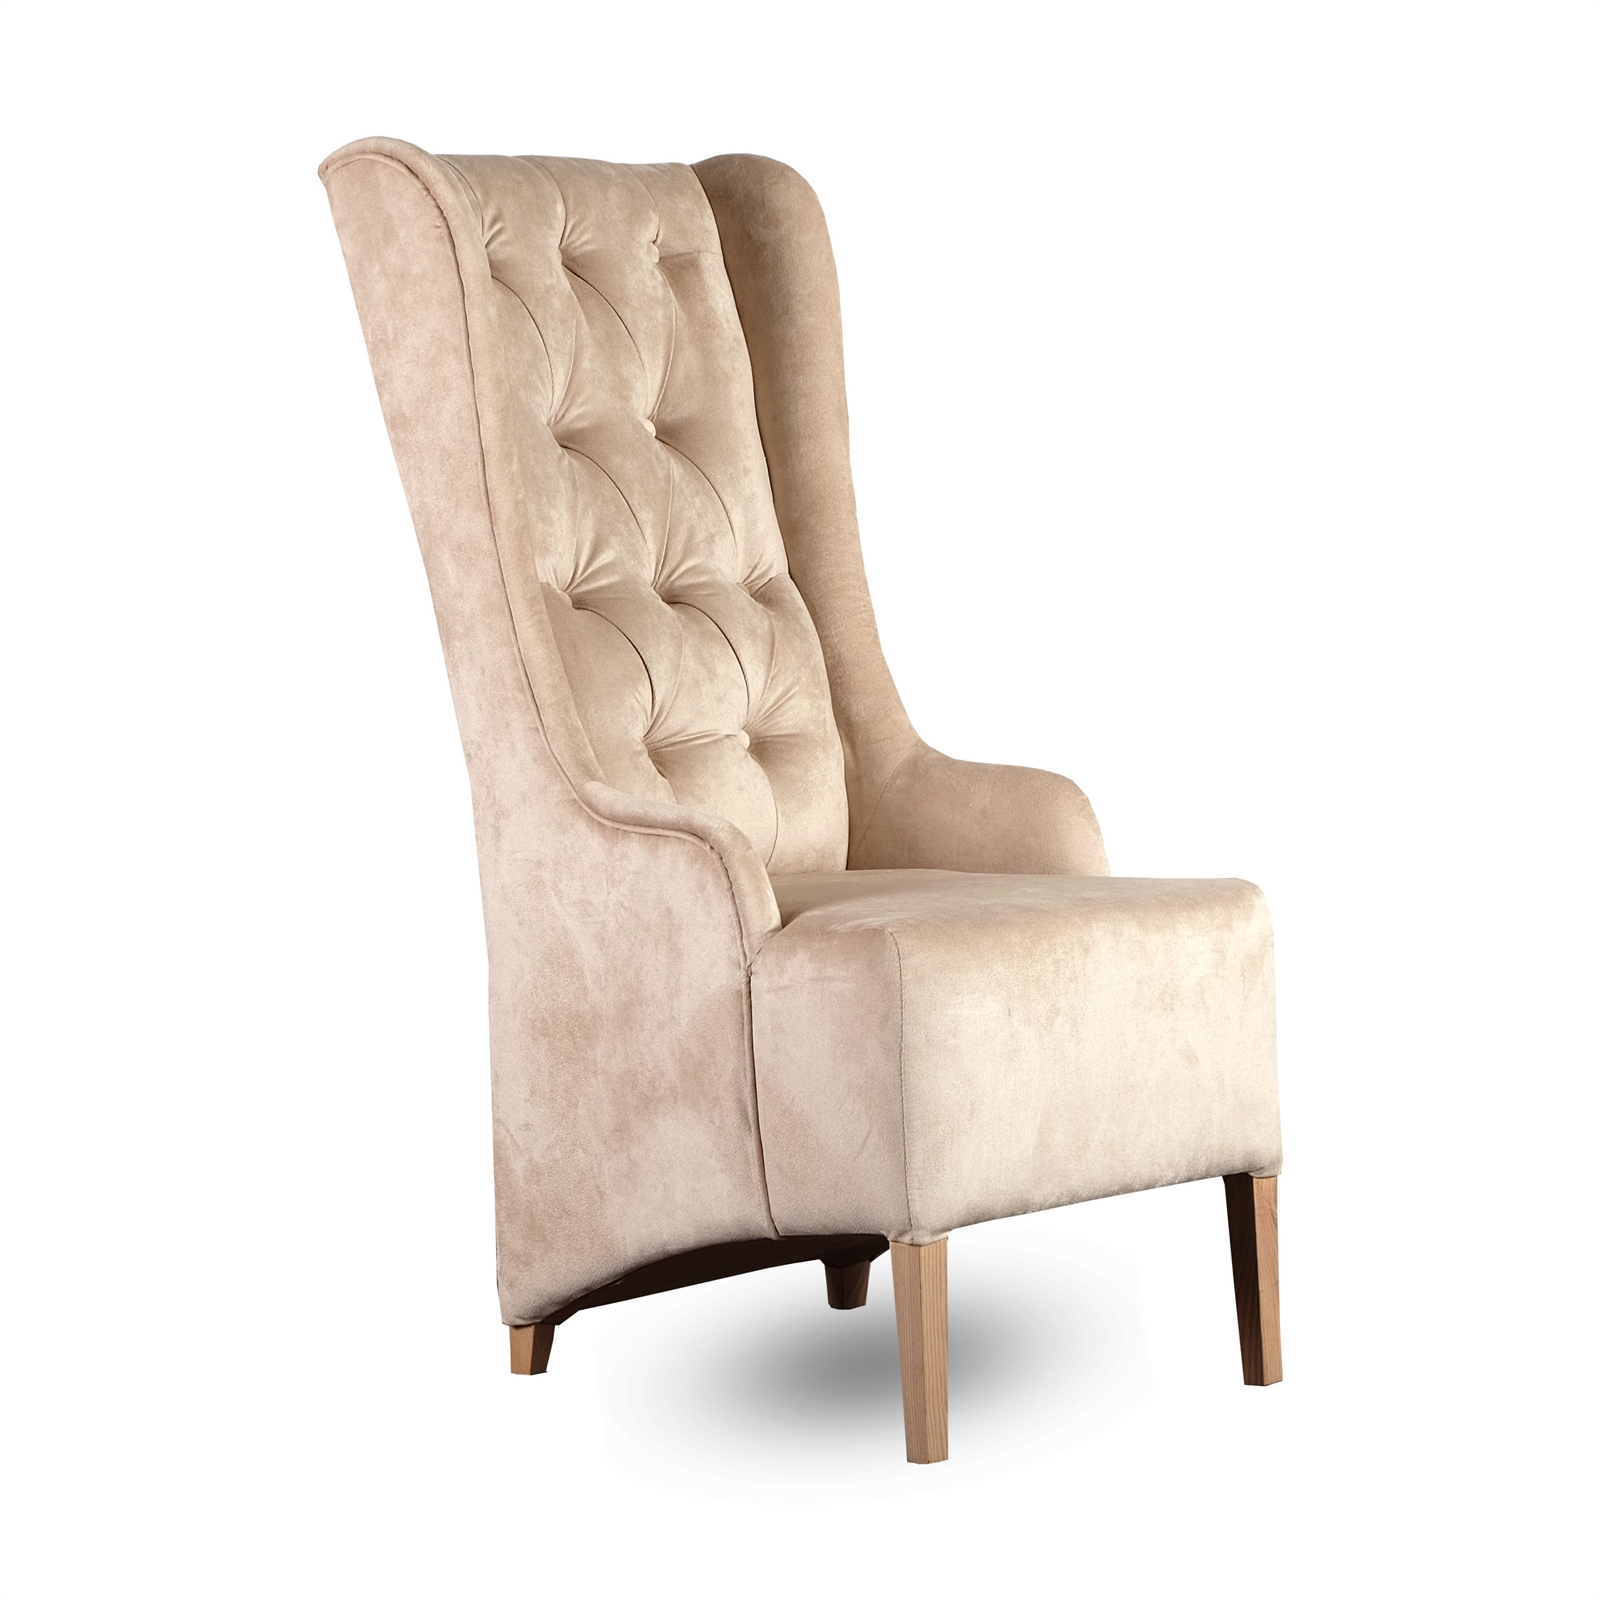 Padded design chair new york velvet cover beige for Chair new design